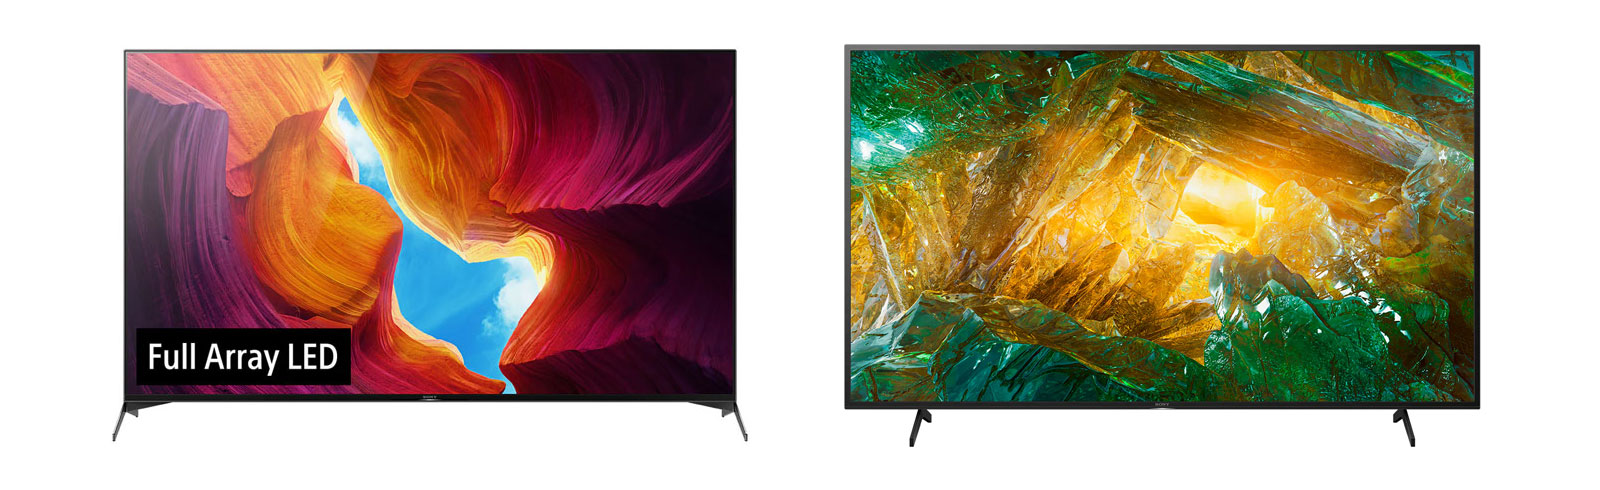 USA 2020 Sony 4K TVs from the X950H and X800H series are launched - specifications and prices